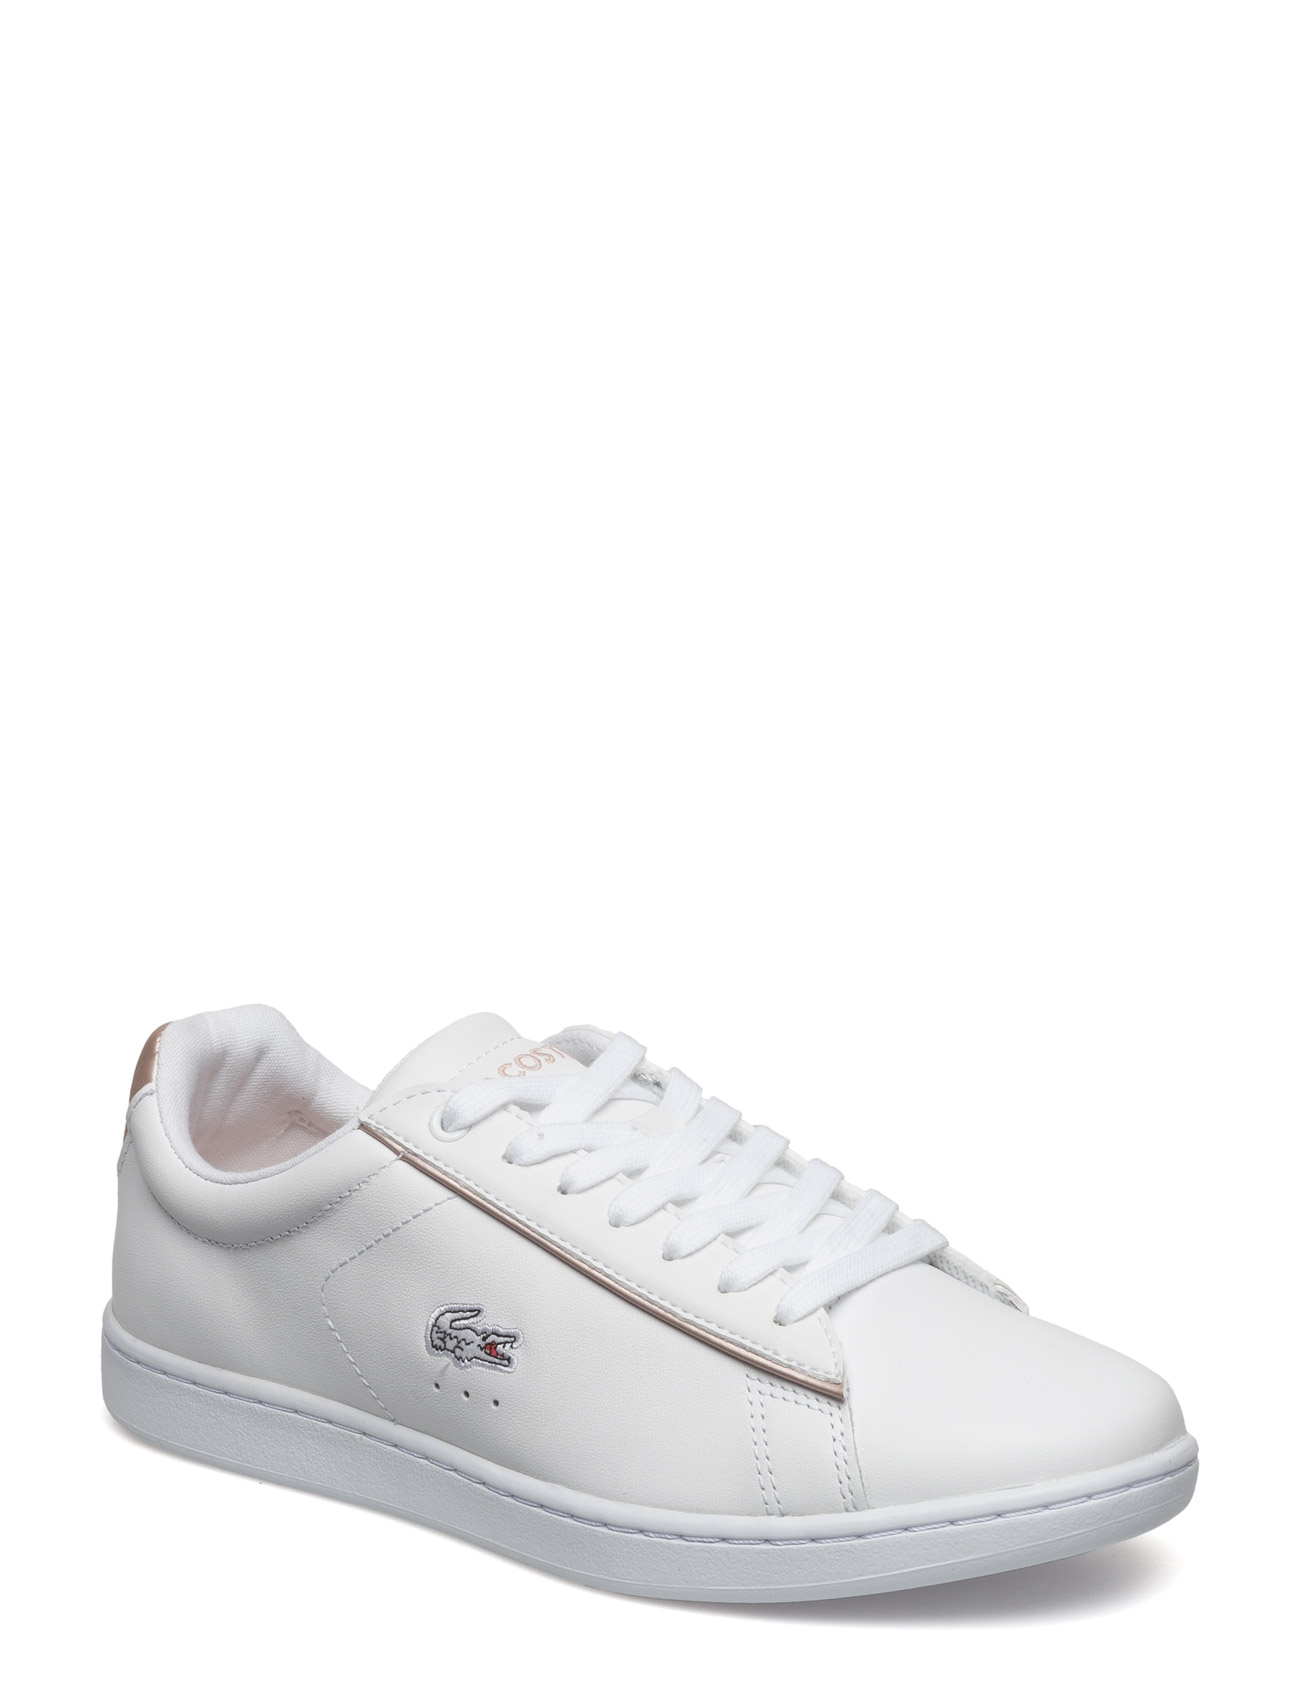 lacoste shoes – Carnaby evo 217 2 på boozt.com dk